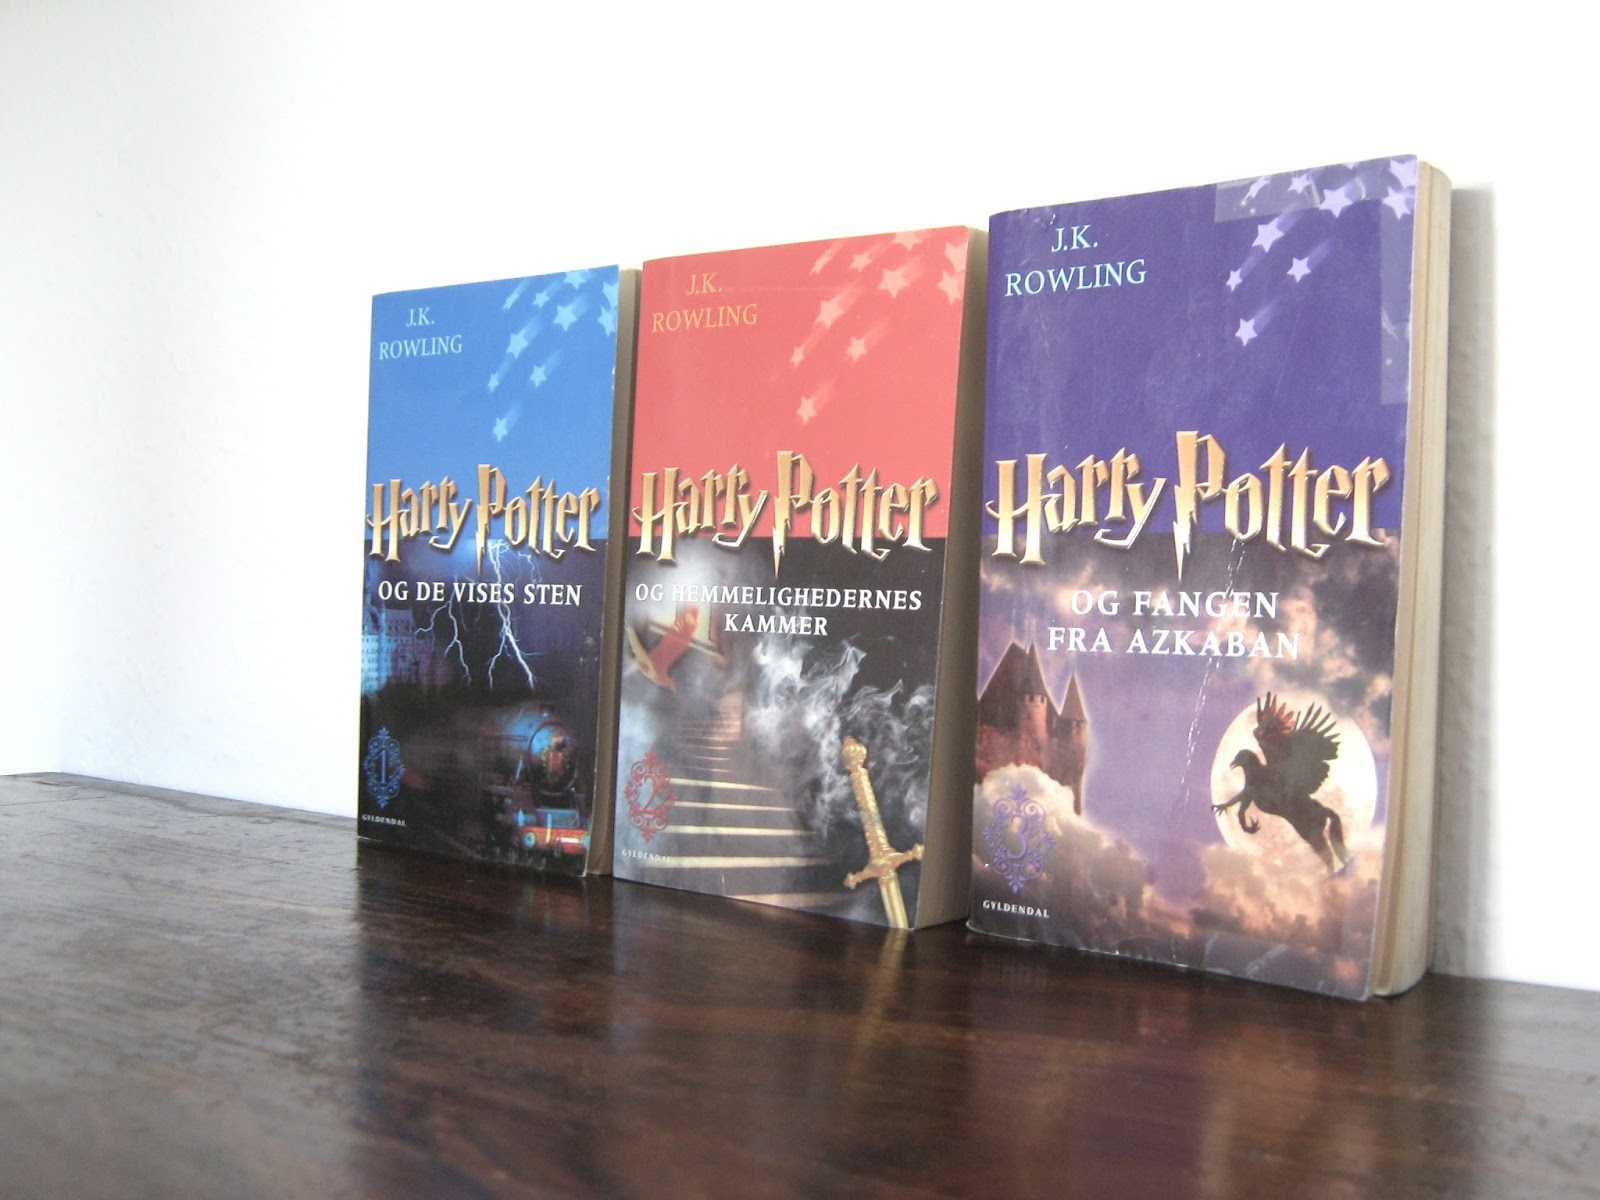 harry potter paperback dansk